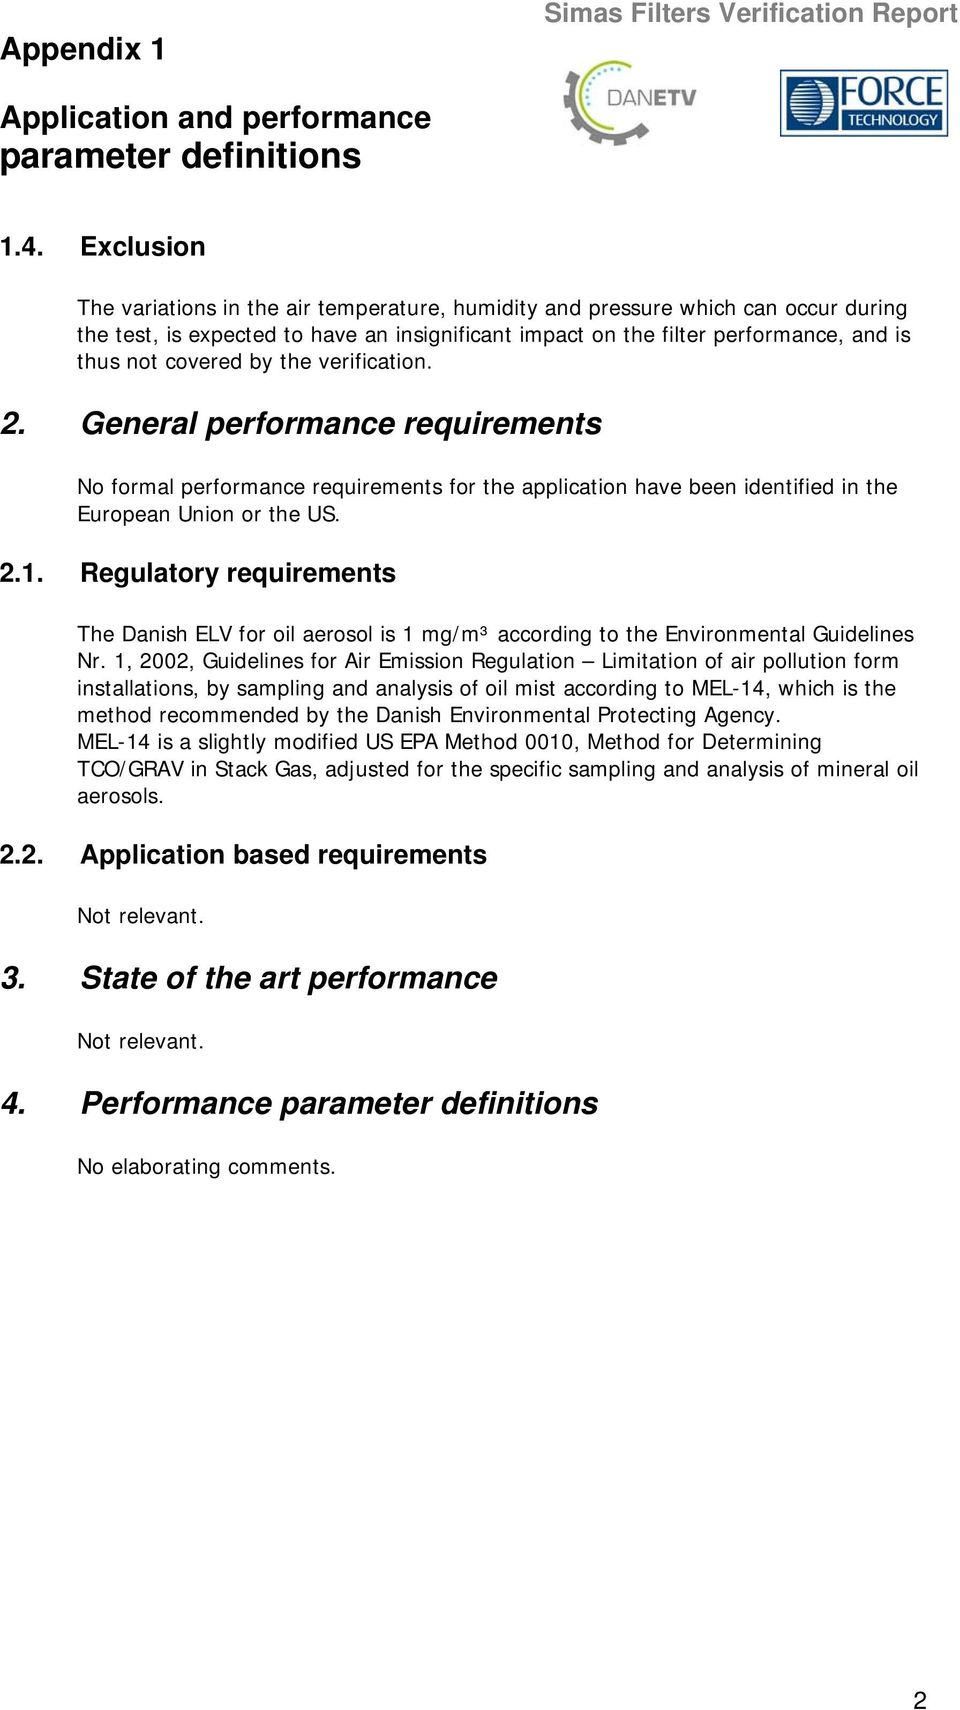 by the verification. 2. General performance requirements No formal performance requirements for the application have been identified in the European Union or the US. 2.1.